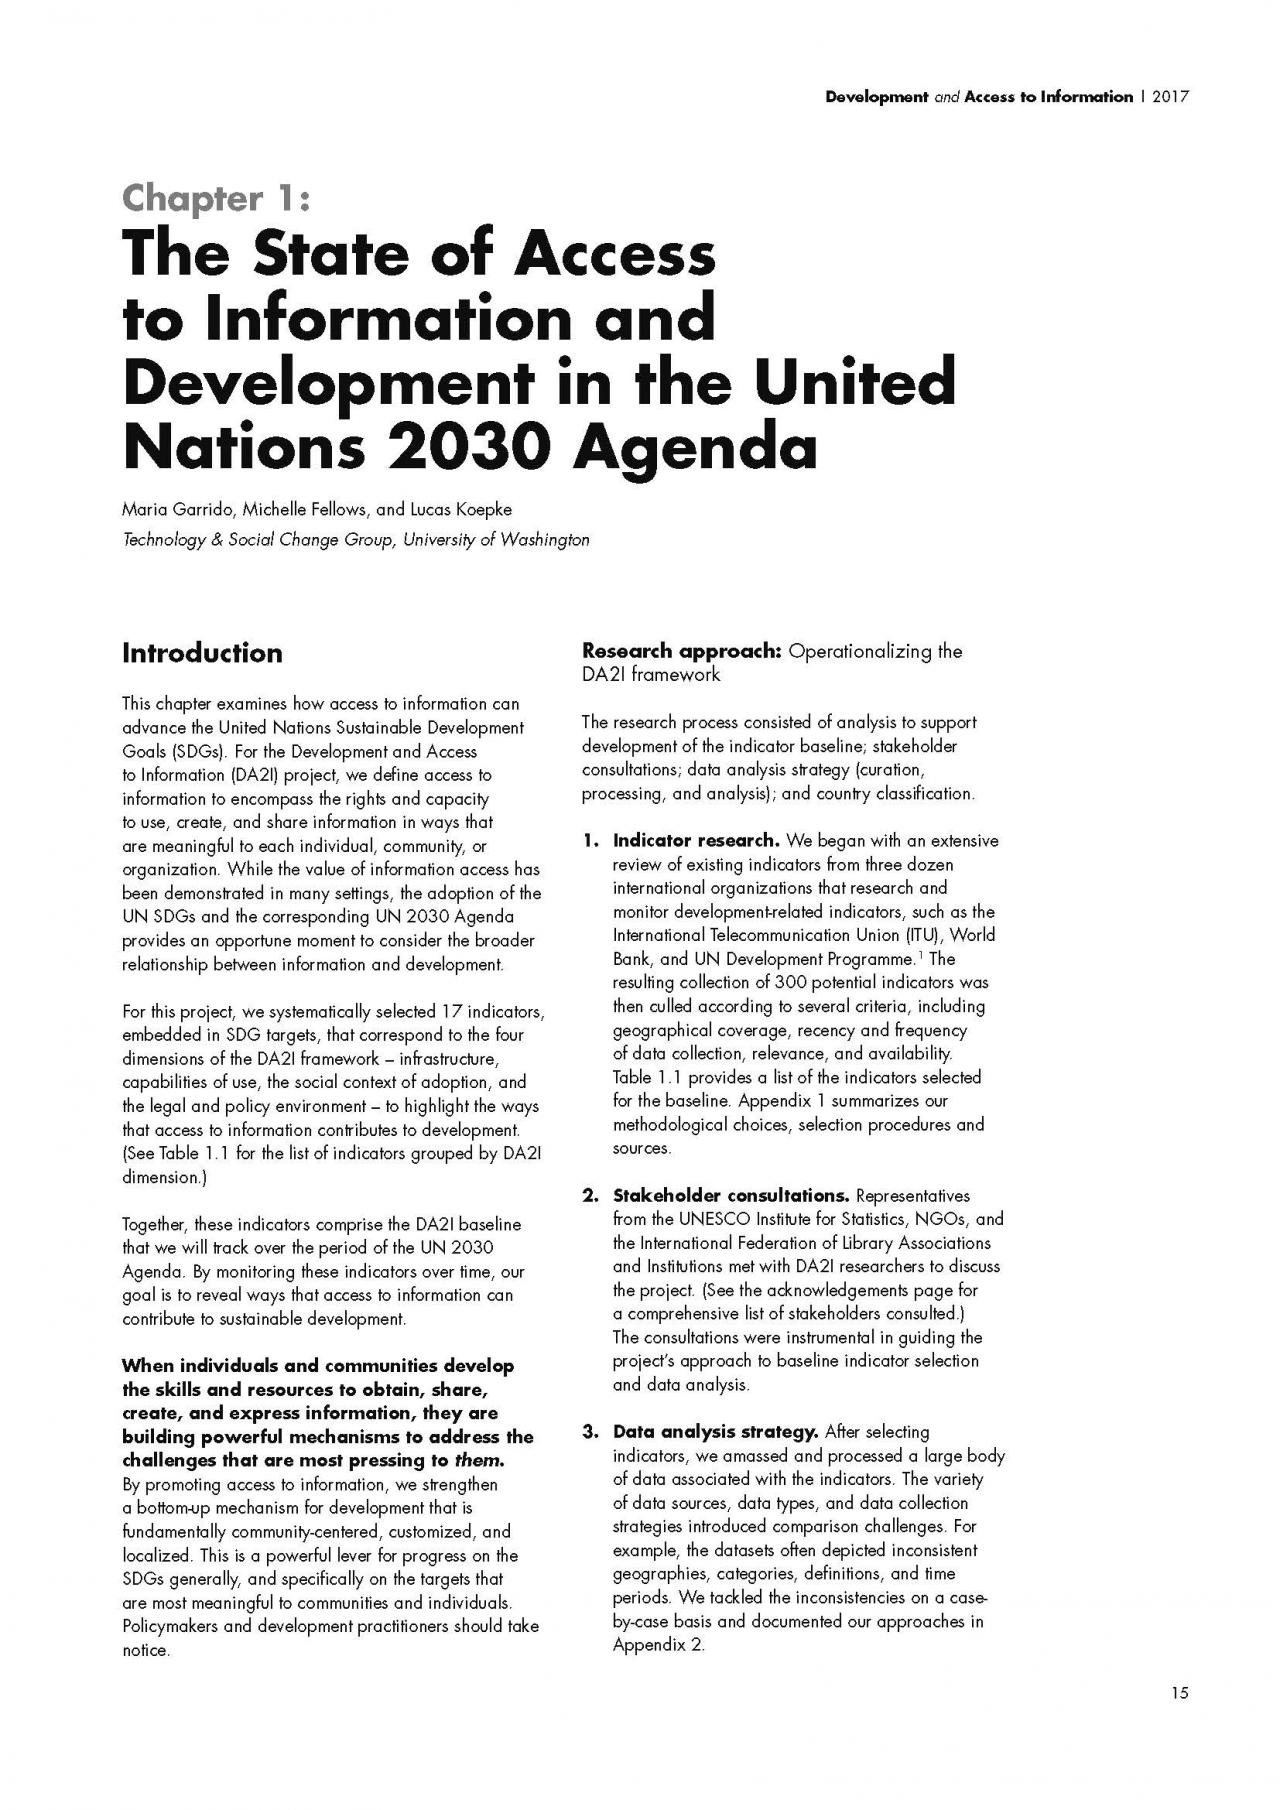 Chapter 1: The State of Access to Information and Development in the United Nations 2030 Agenda